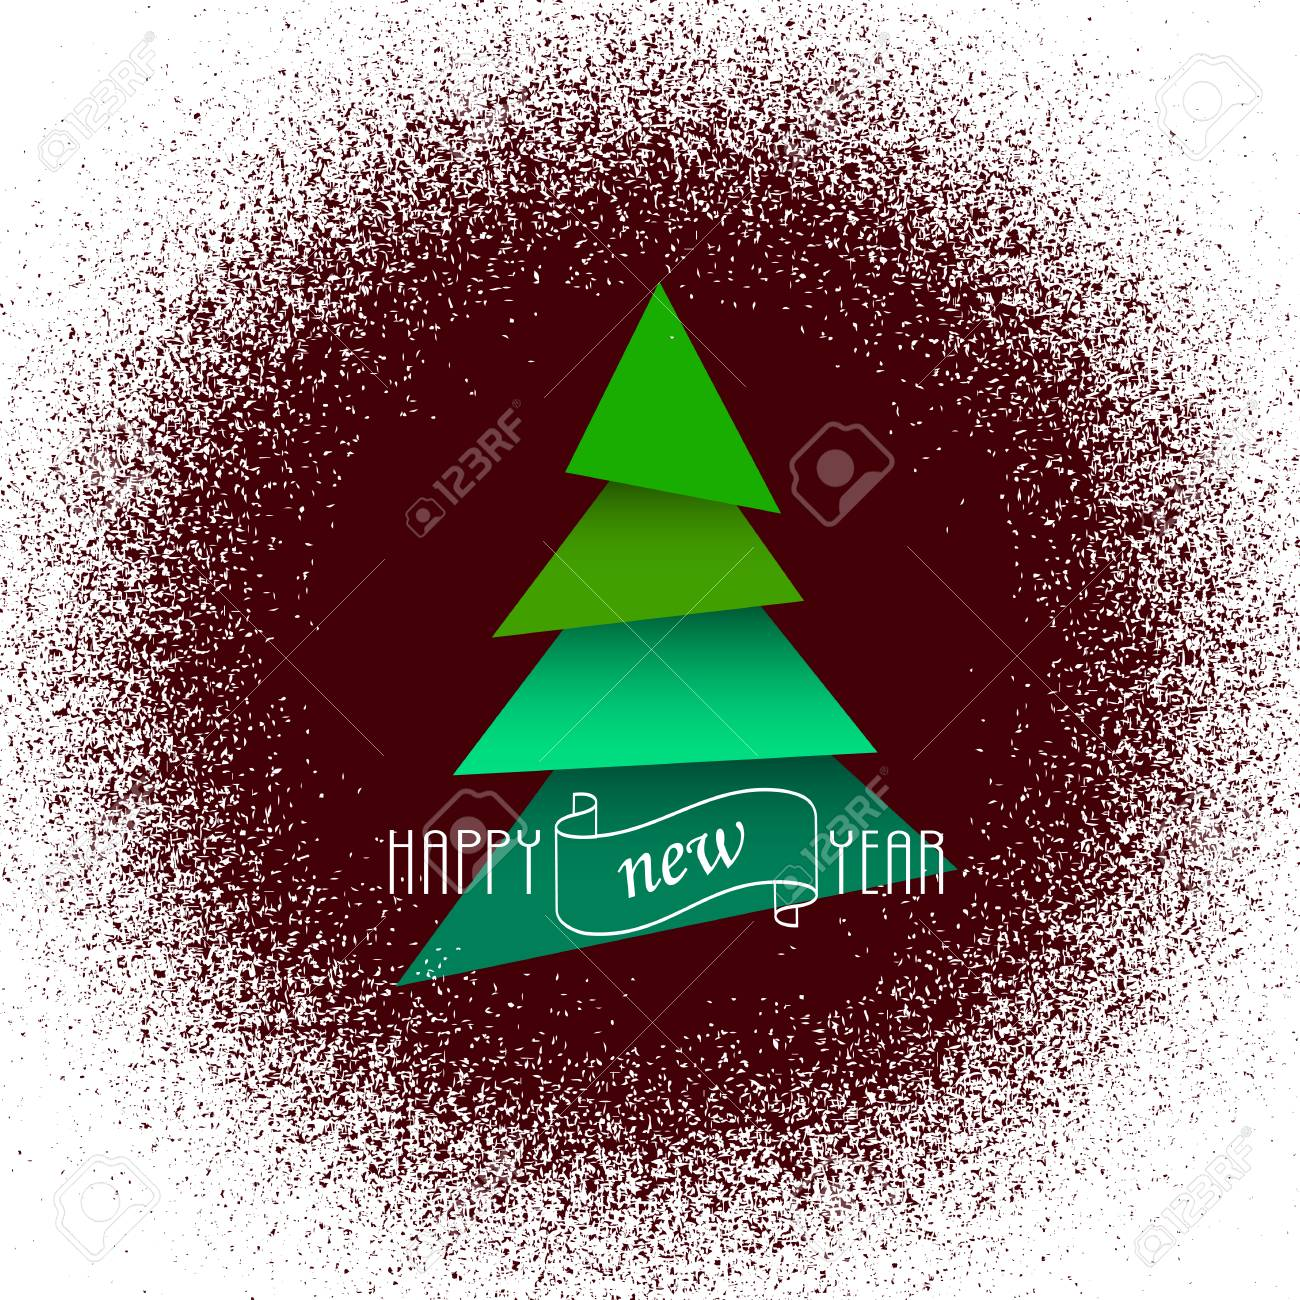 Christmas Tree Spray.Green Paper Christmas Tree In Spray Paint Effect Frame Winter